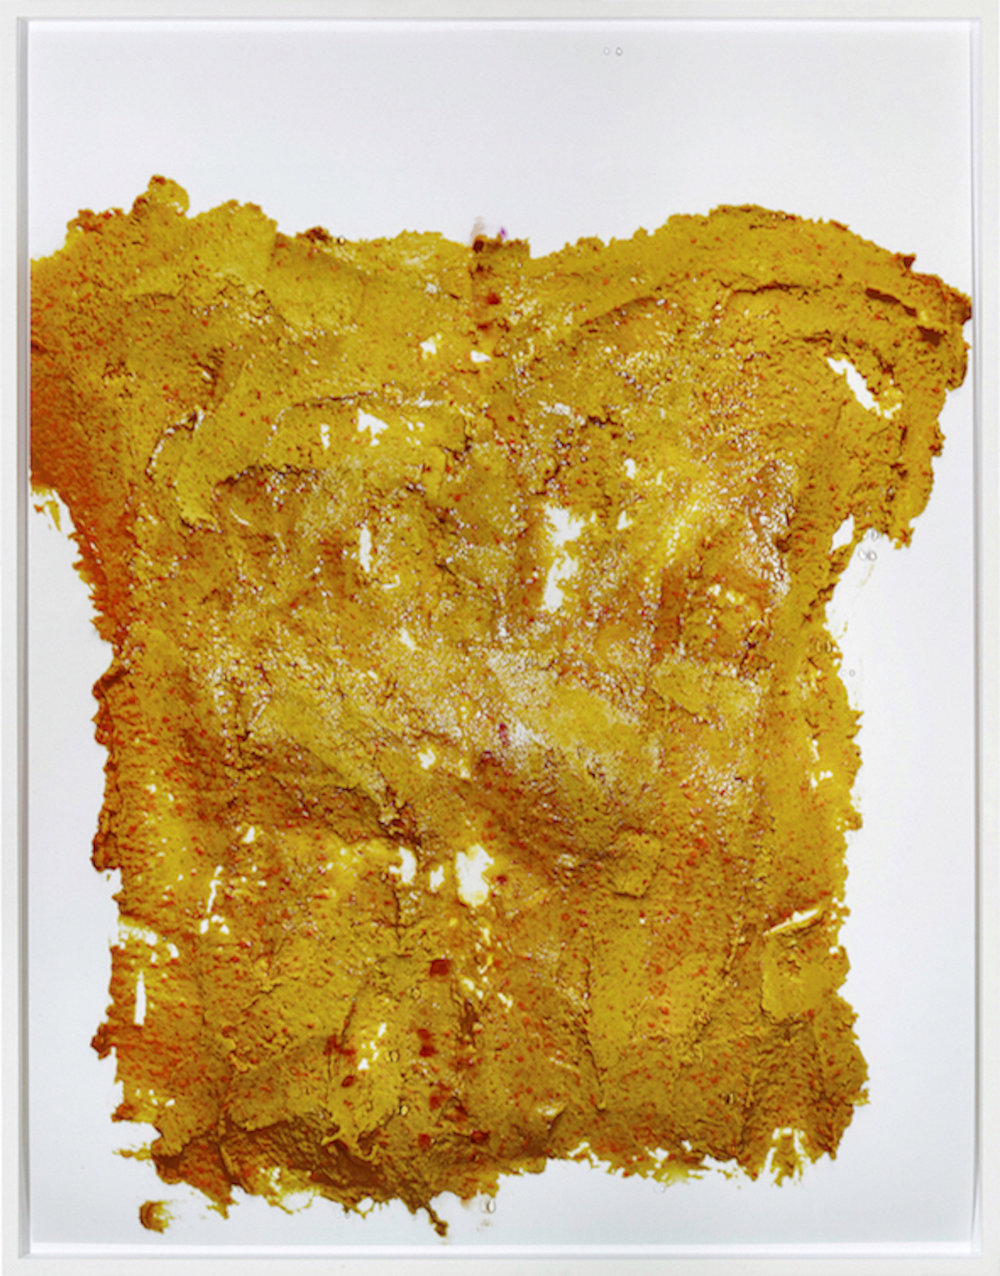 Lisa Holzer, Not yet titled, 2016, Pigment print on cotton paper, Crystal Clear 202/1 polyurethane and acrylic paint on glass, 110.3 x 86.3 cm, Courtesy: Galerie Emanuel Layr